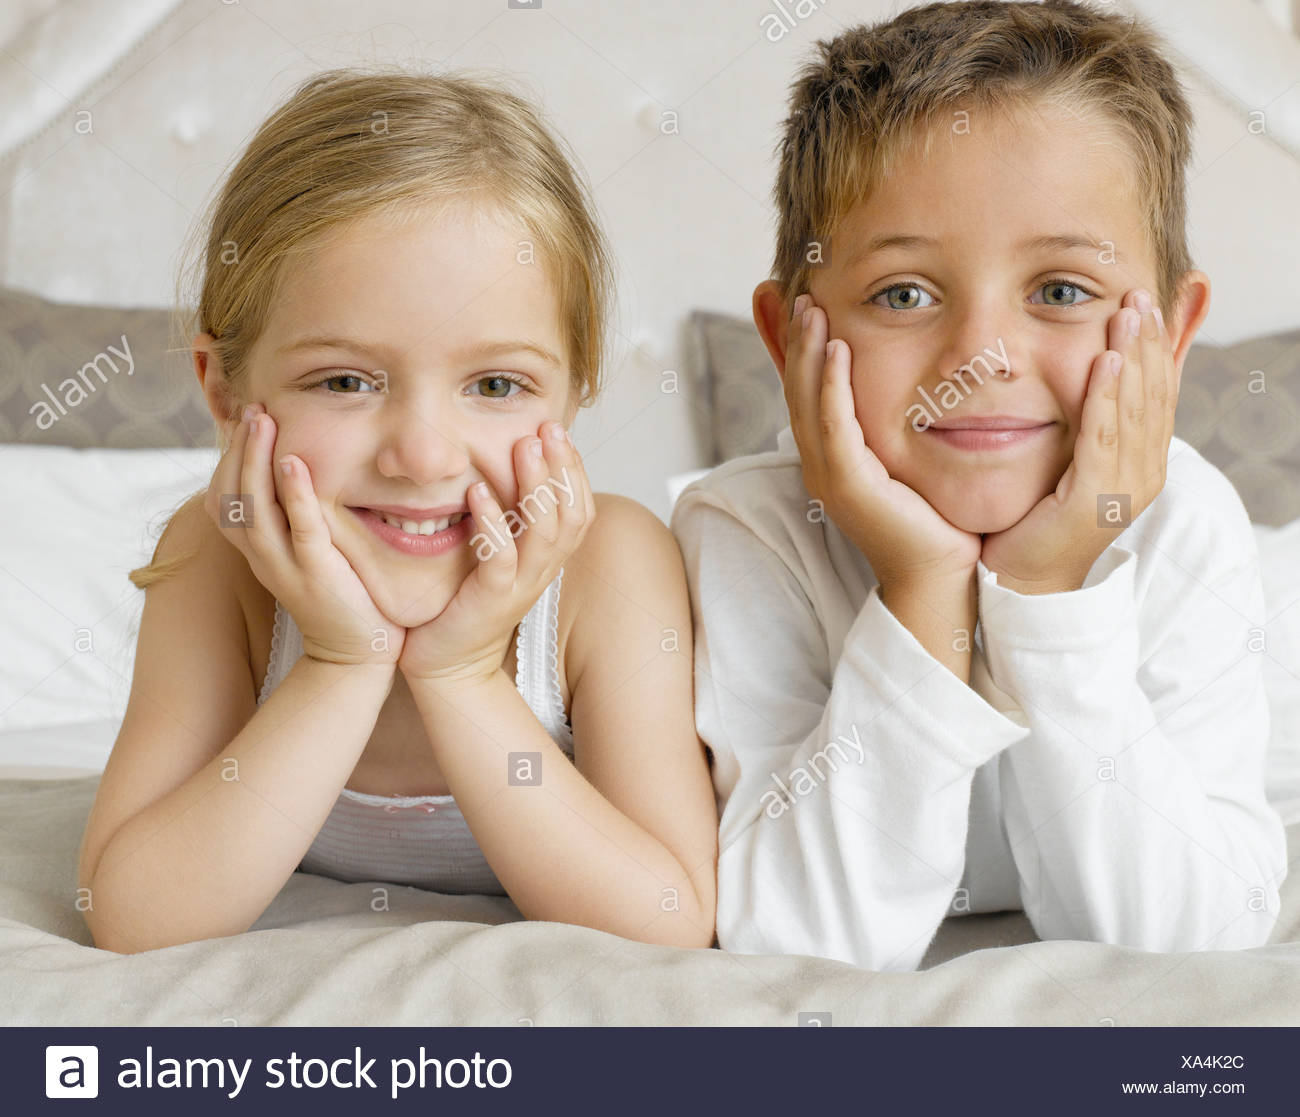 Two young kids lying on their stomachs smiling - Stock Image